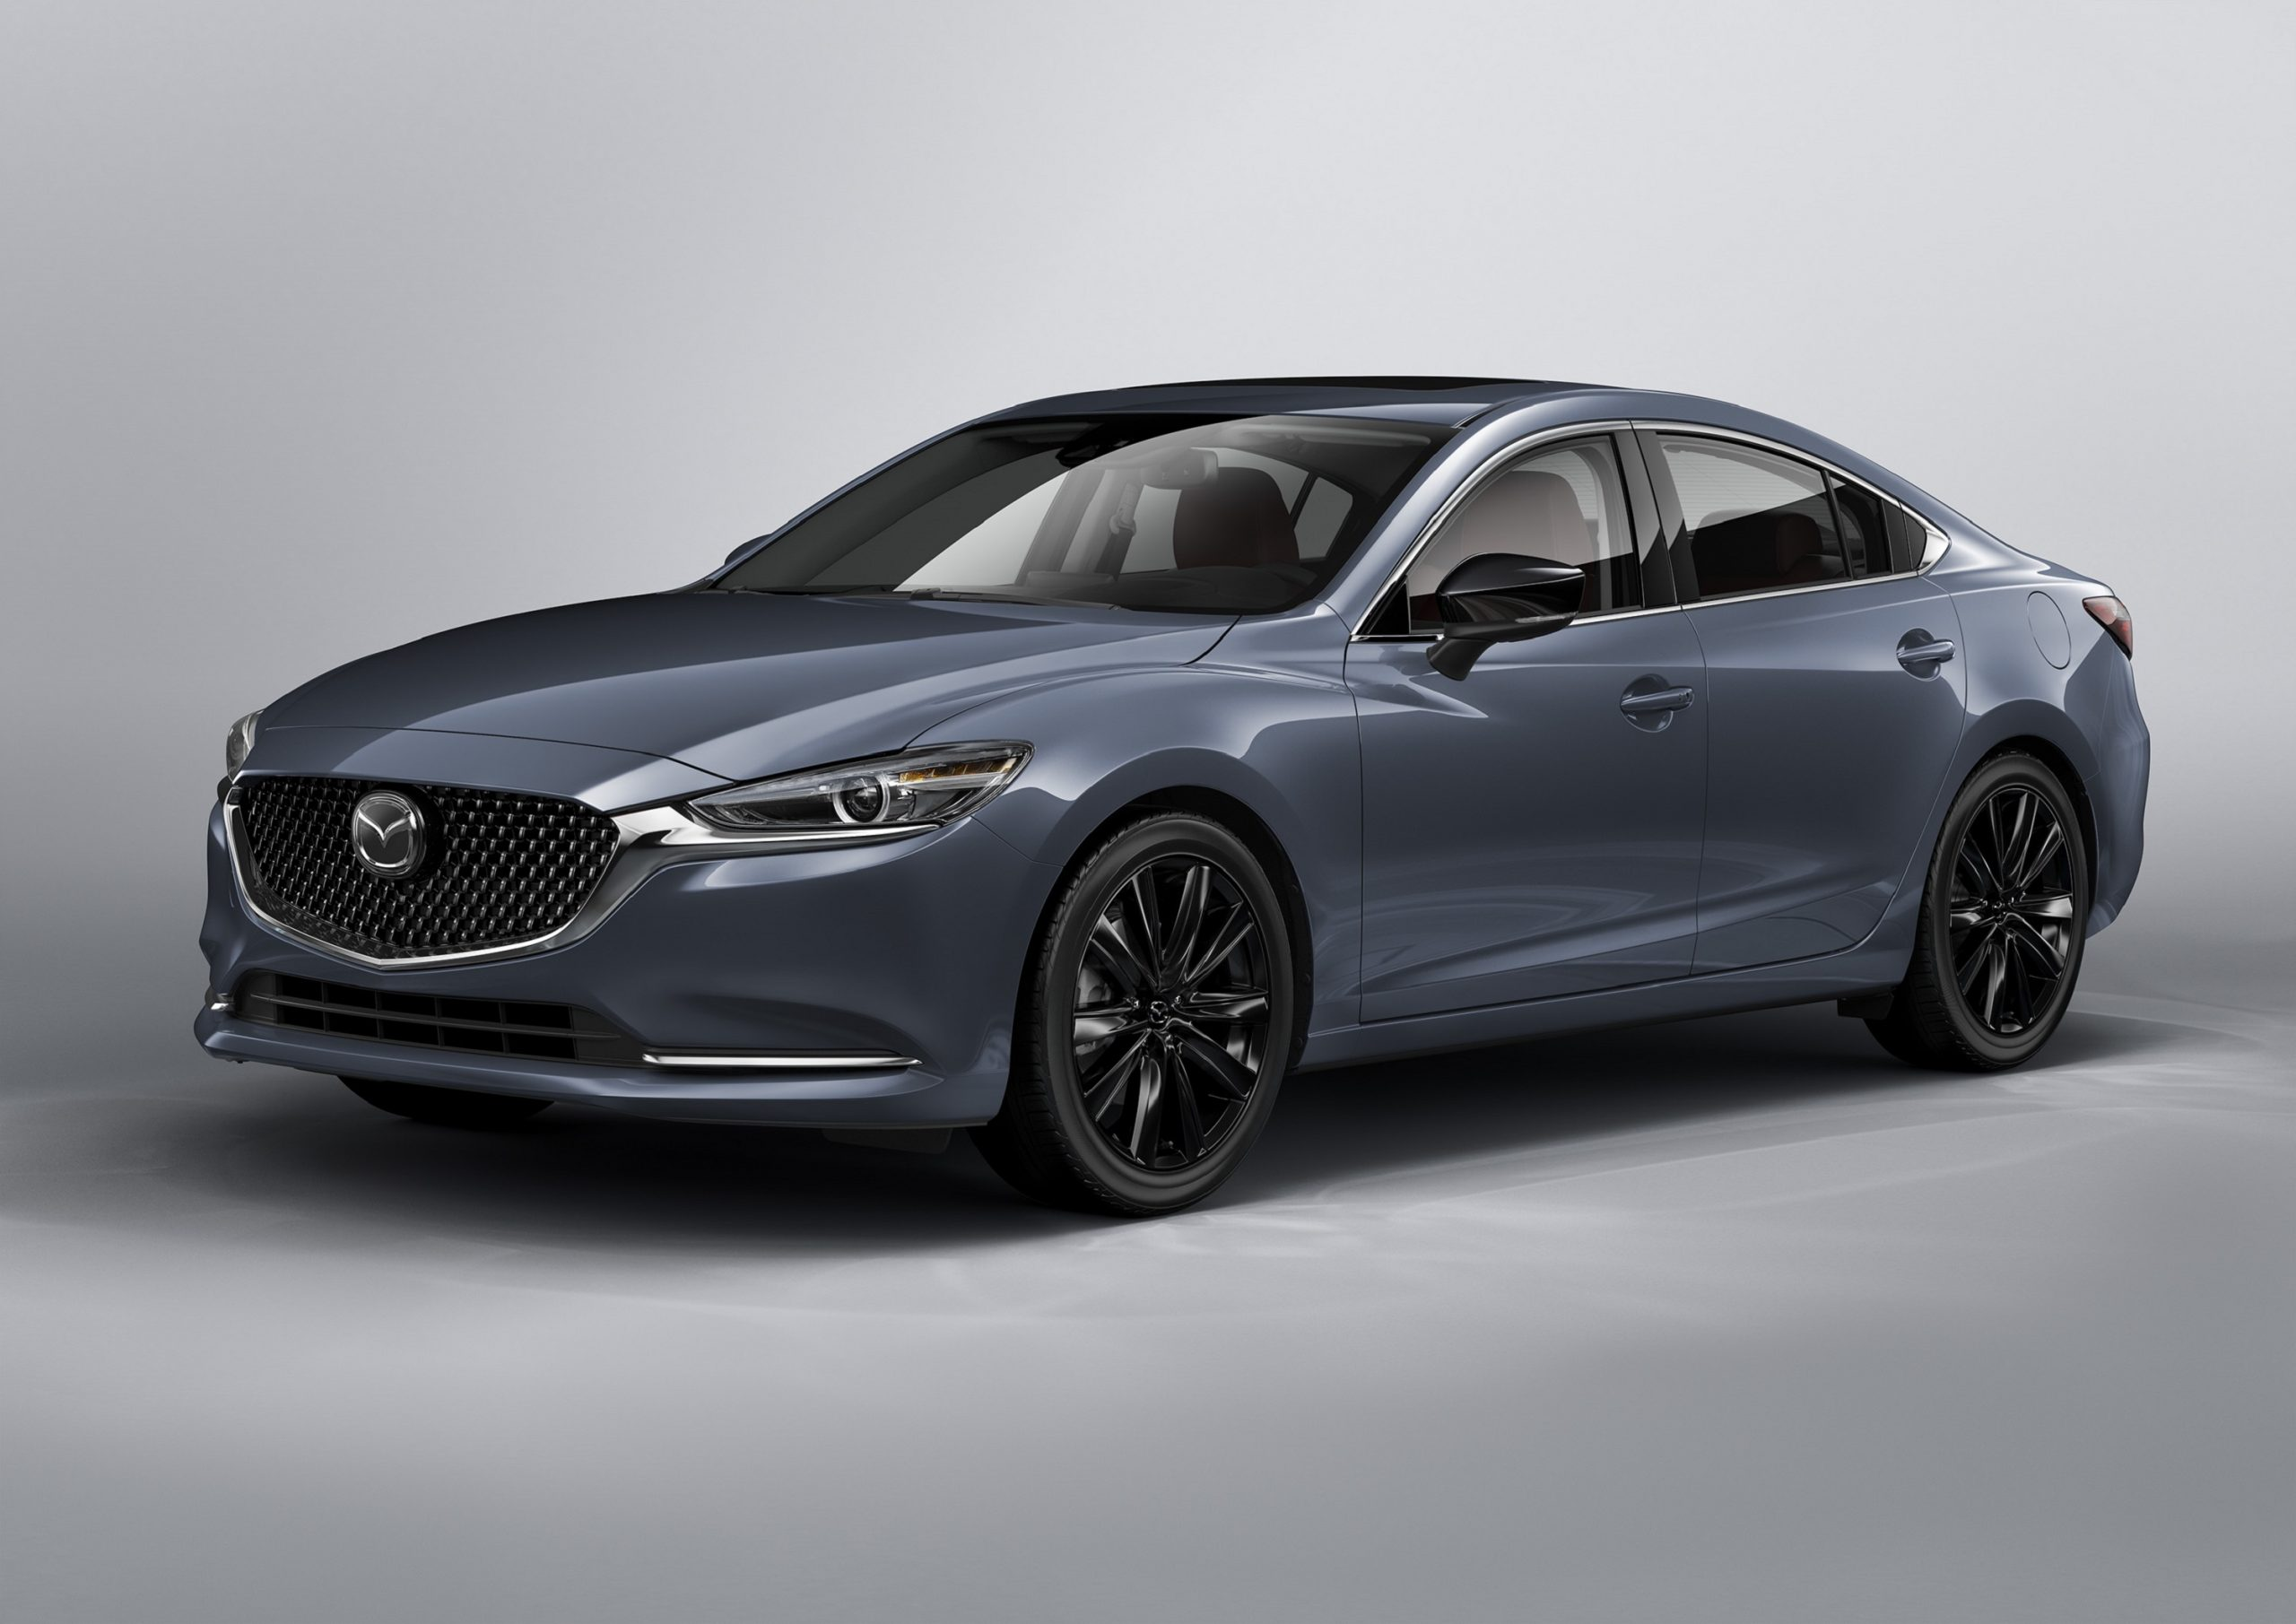 A grey 2021 Mazda 6 sedan shot from the front 3/4 angle in a studio